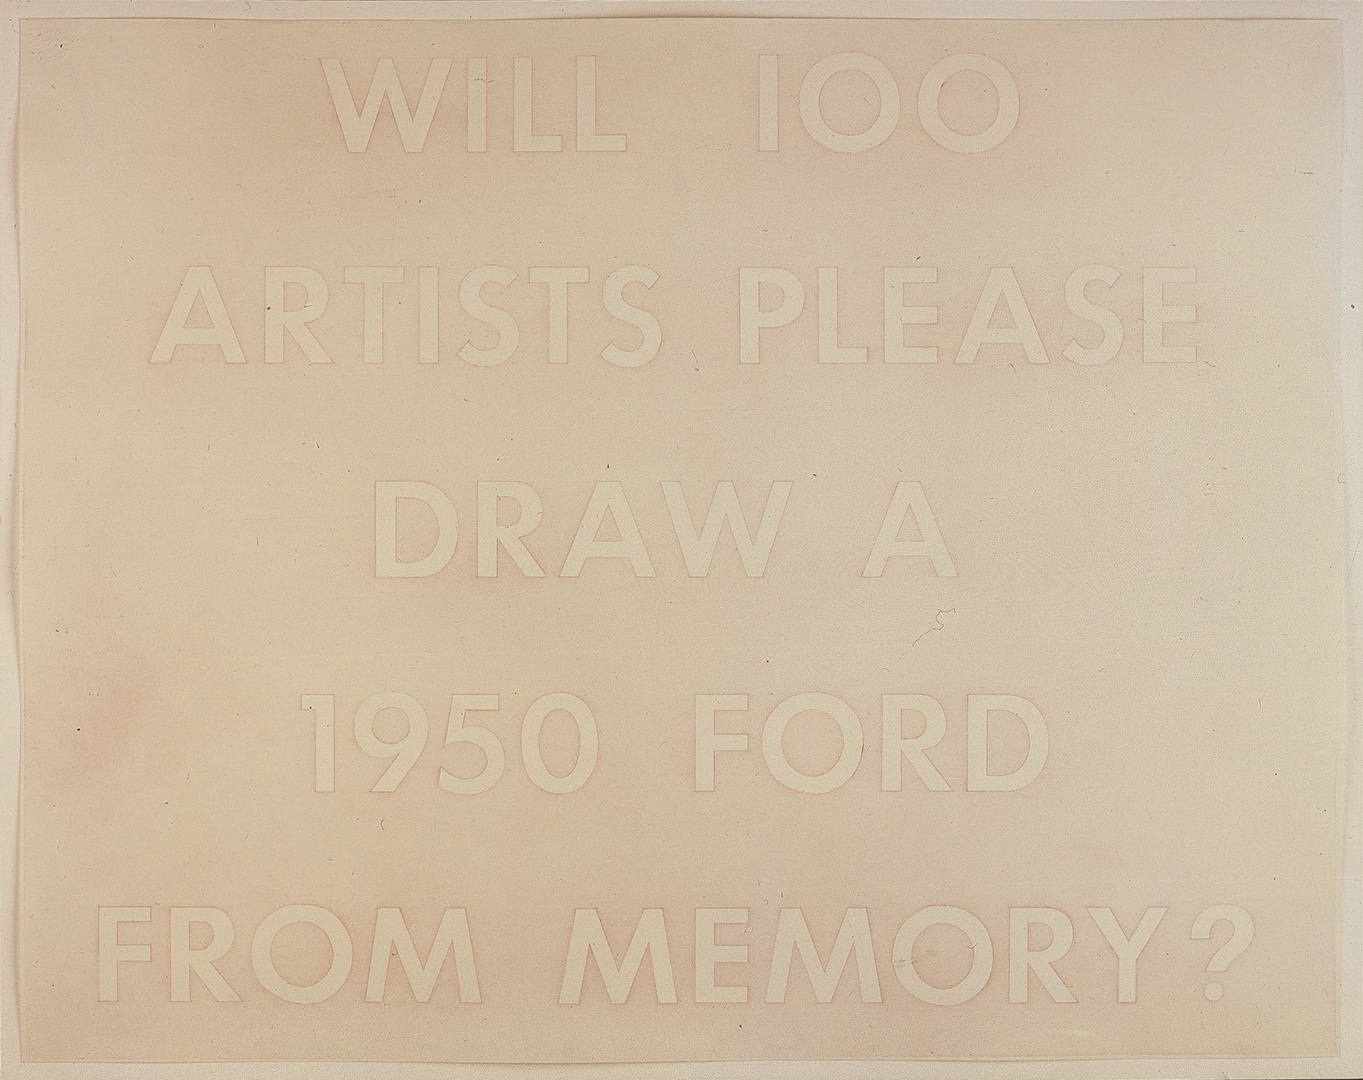 Ed Ruscha - WILL 100 ARTISTS PLEASE DRAW A 1950 FORD FROM MEMORY?, 1977, pastel on paper